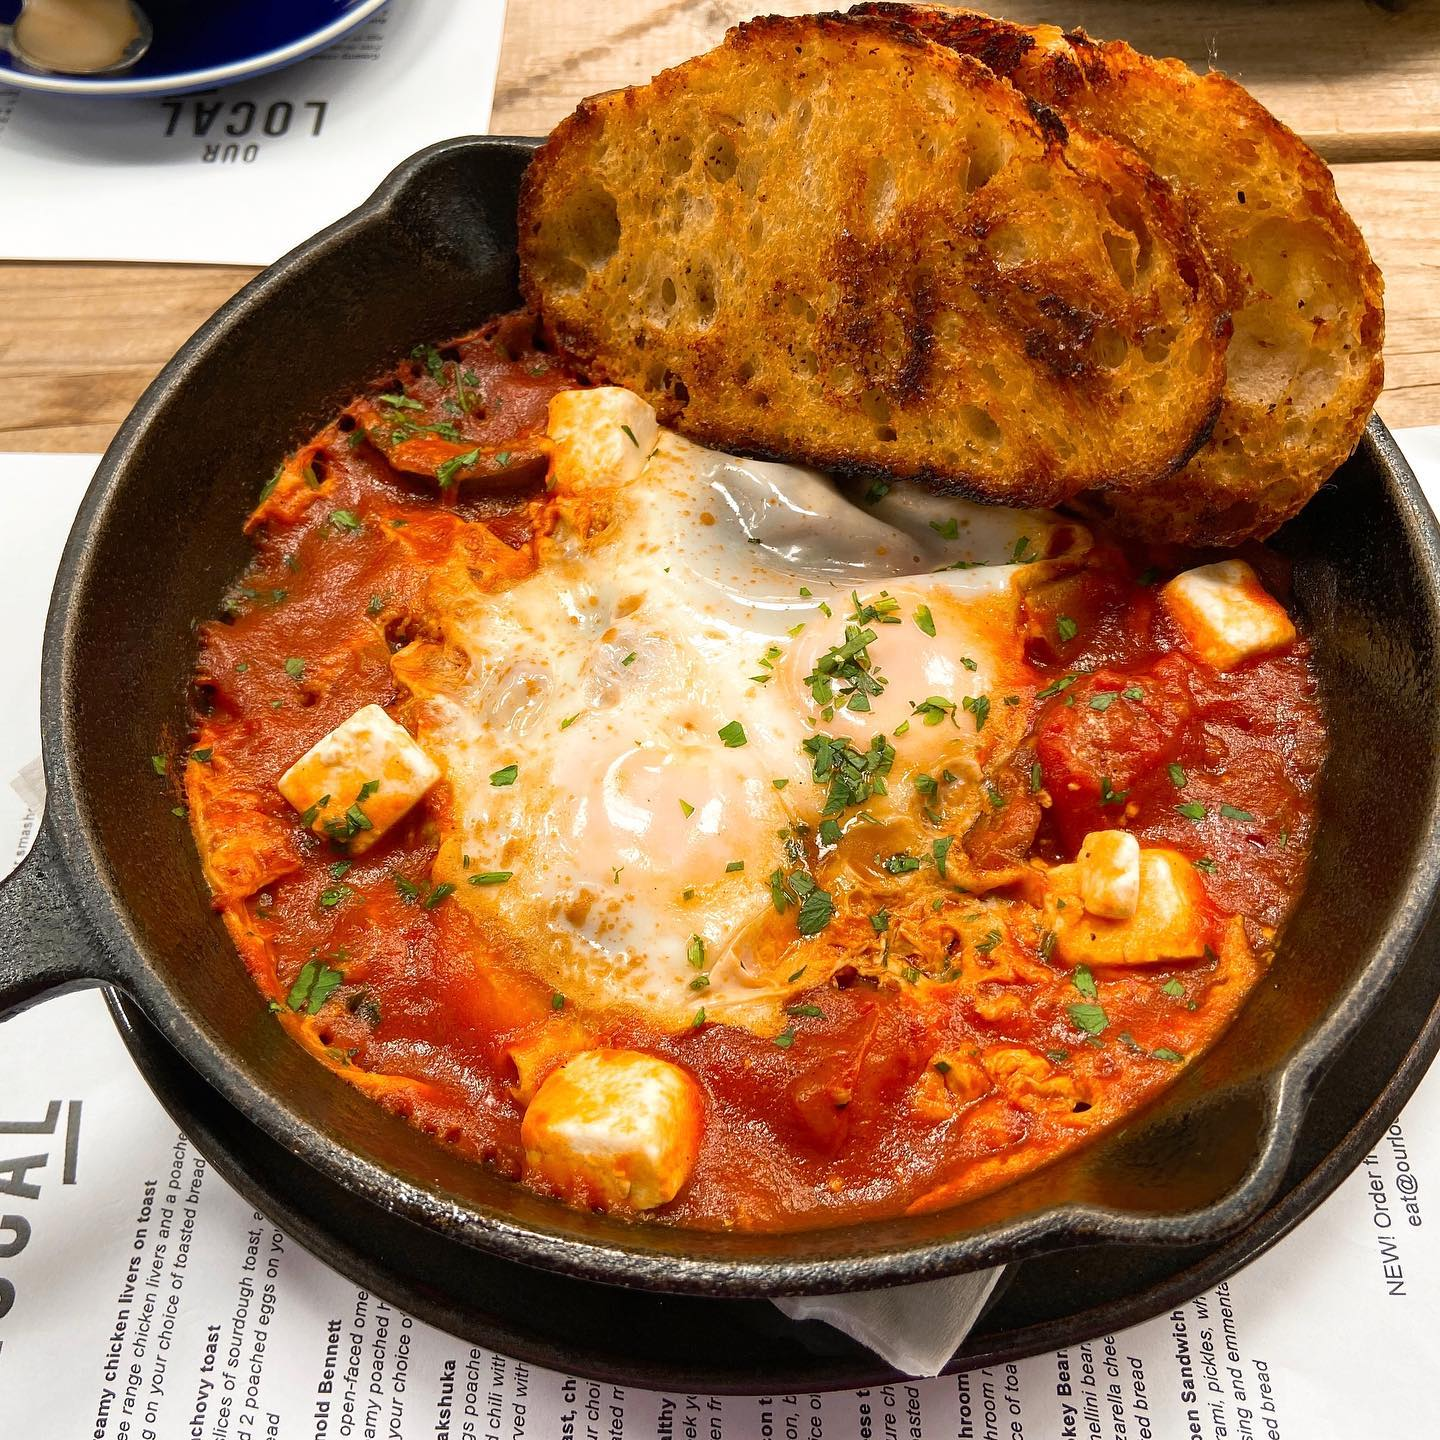 Eggs Shakshuka at @our_local in Kloof road,Cape Town ️#breakfast #earlymornings #eggs #shakshuka #breakfastideas #breakfasttime #capetown #capetownfood #mothercity #summer #breakfastdate #egg #plants #ourlocal #coffeelover #coffee #healthylifestyle #health